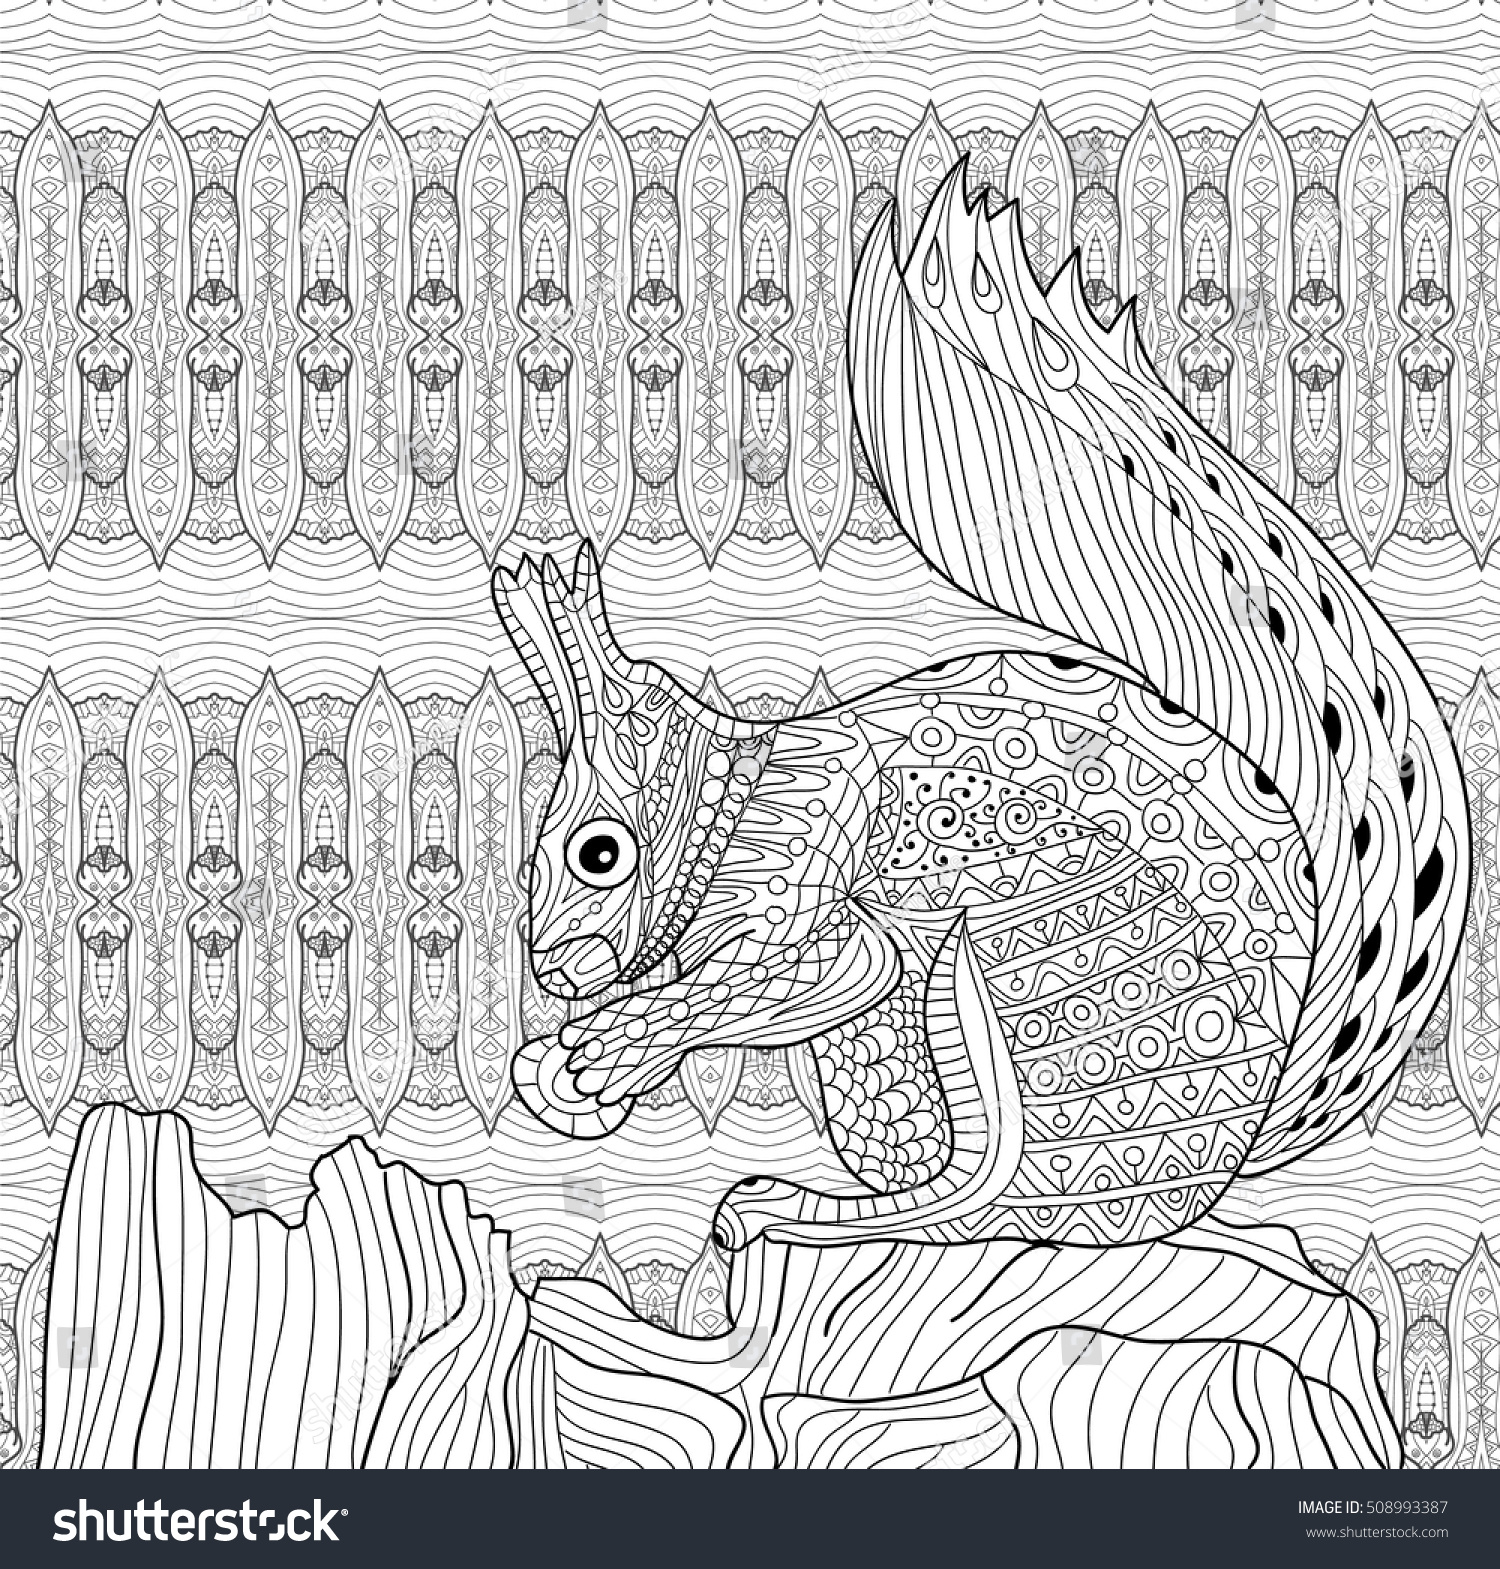 Coloring Book For Adults. Squirrel Sits On A Tree Stump ...